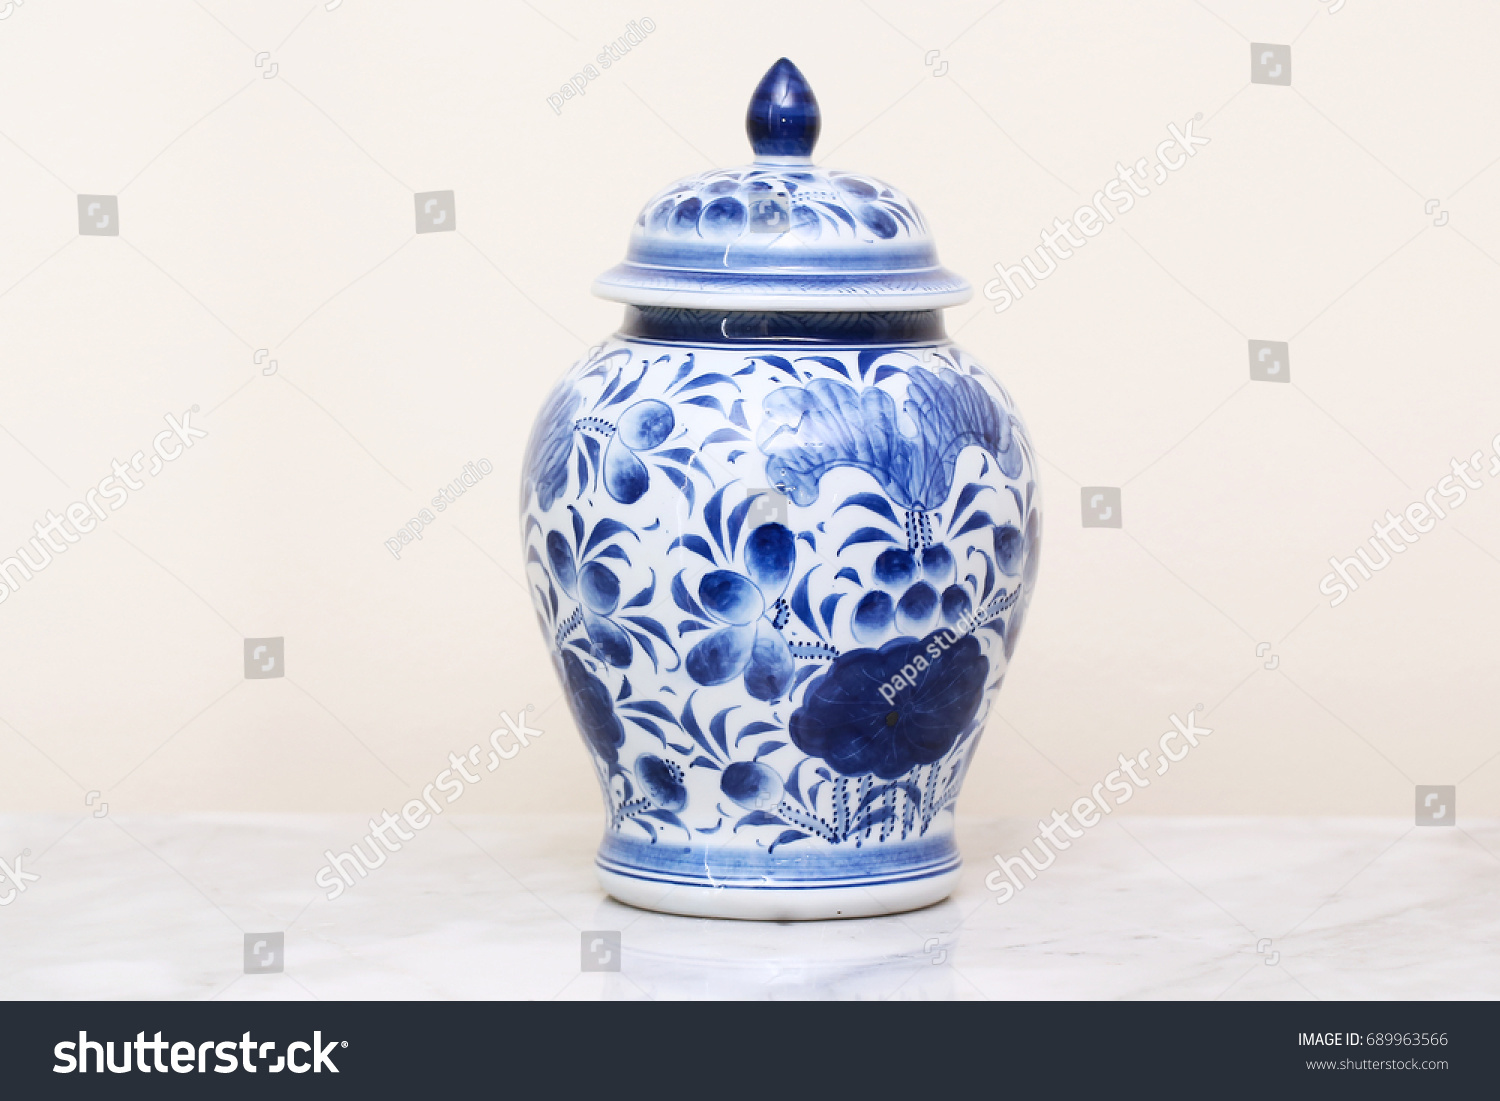 Chinese antique vase stock photo 689963566 shutterstock chinese antique vase reviewsmspy